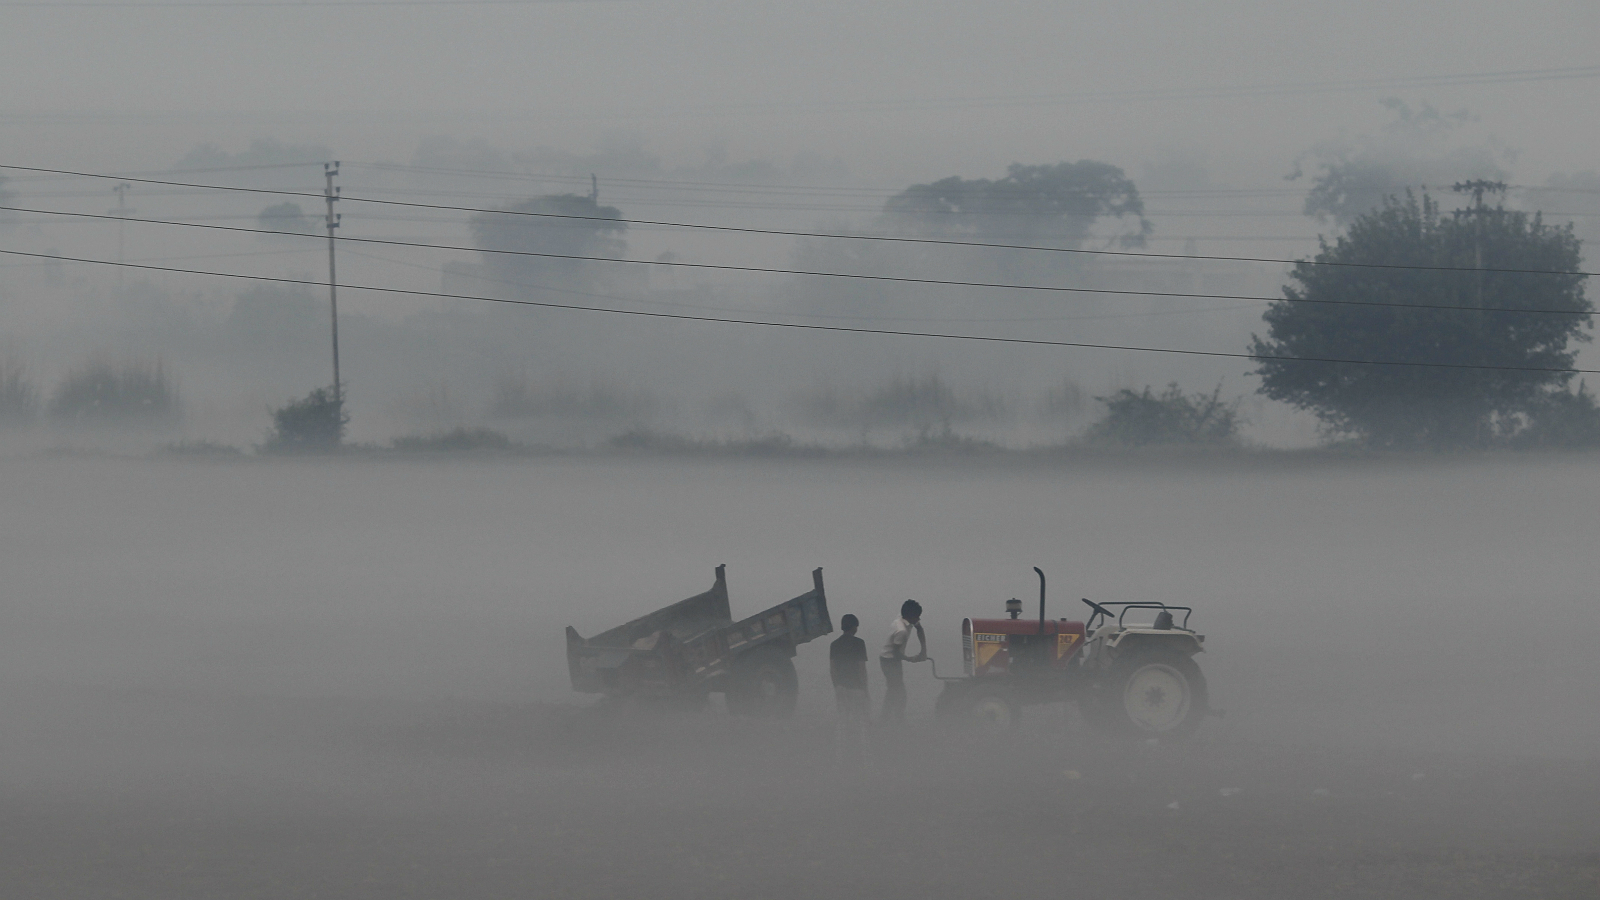 A man starts the engine of a tractor during a foggy morning in a field along the Delhi-Noida highway October 26, 2012.